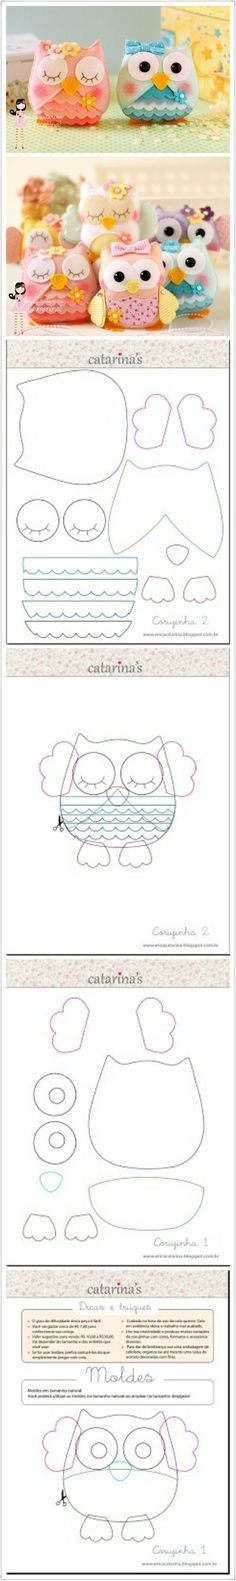 16 best images about Souvenir on Pinterest | Free pattern, Felt owls and Owl patterns